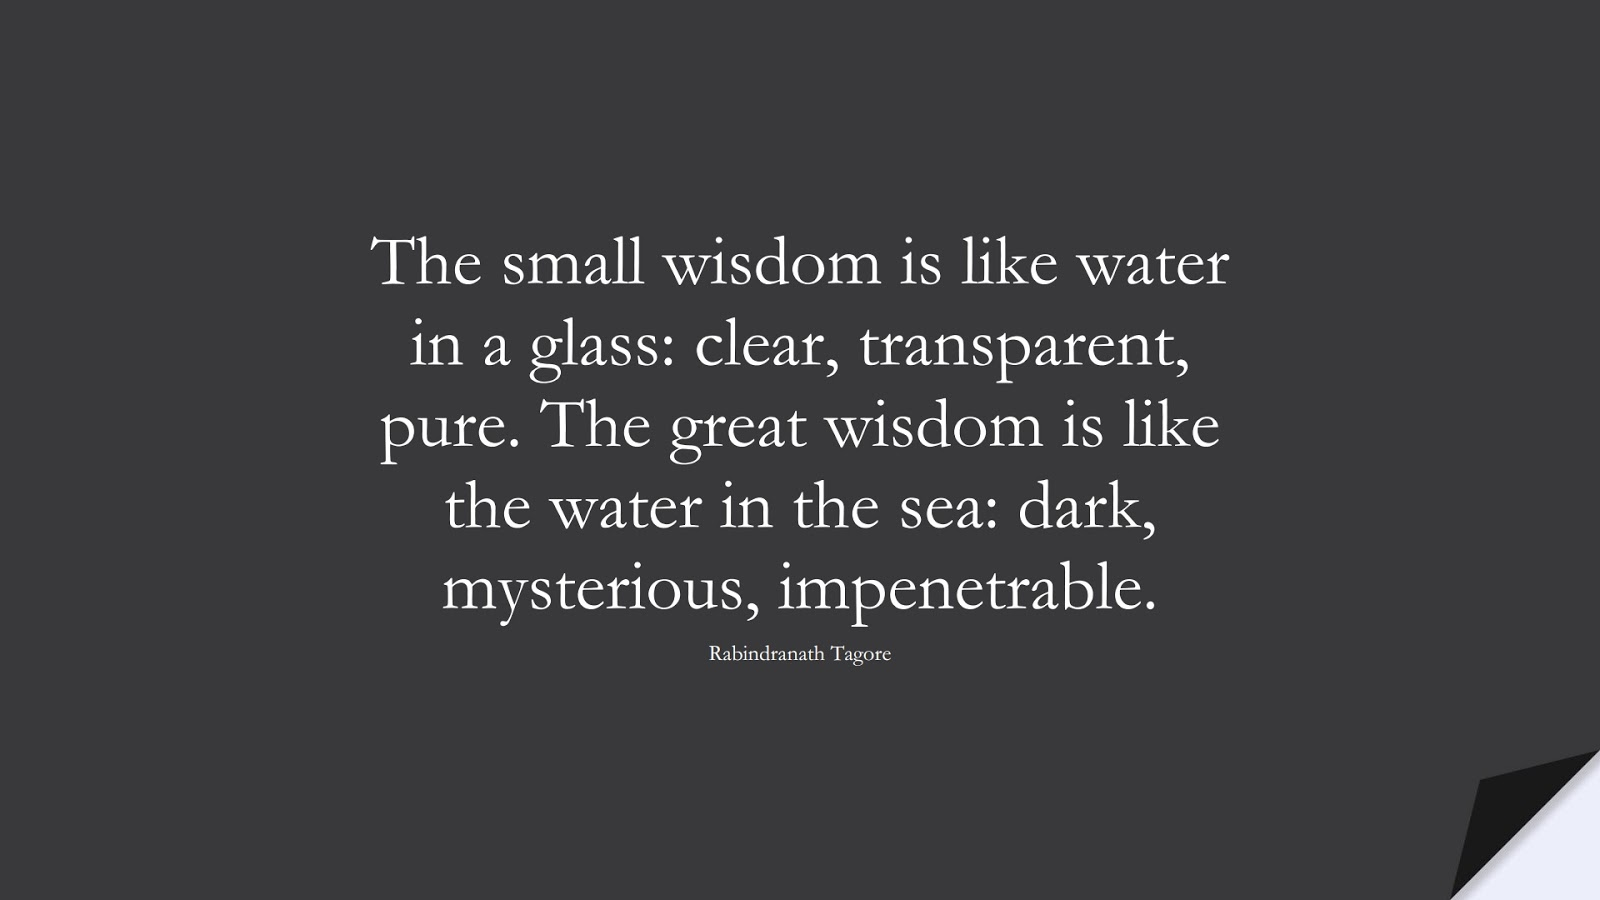 The small wisdom is like water in a glass: clear, transparent, pure. The great wisdom is like the water in the sea: dark, mysterious, impenetrable. (Rabindranath Tagore);  #WordsofWisdom